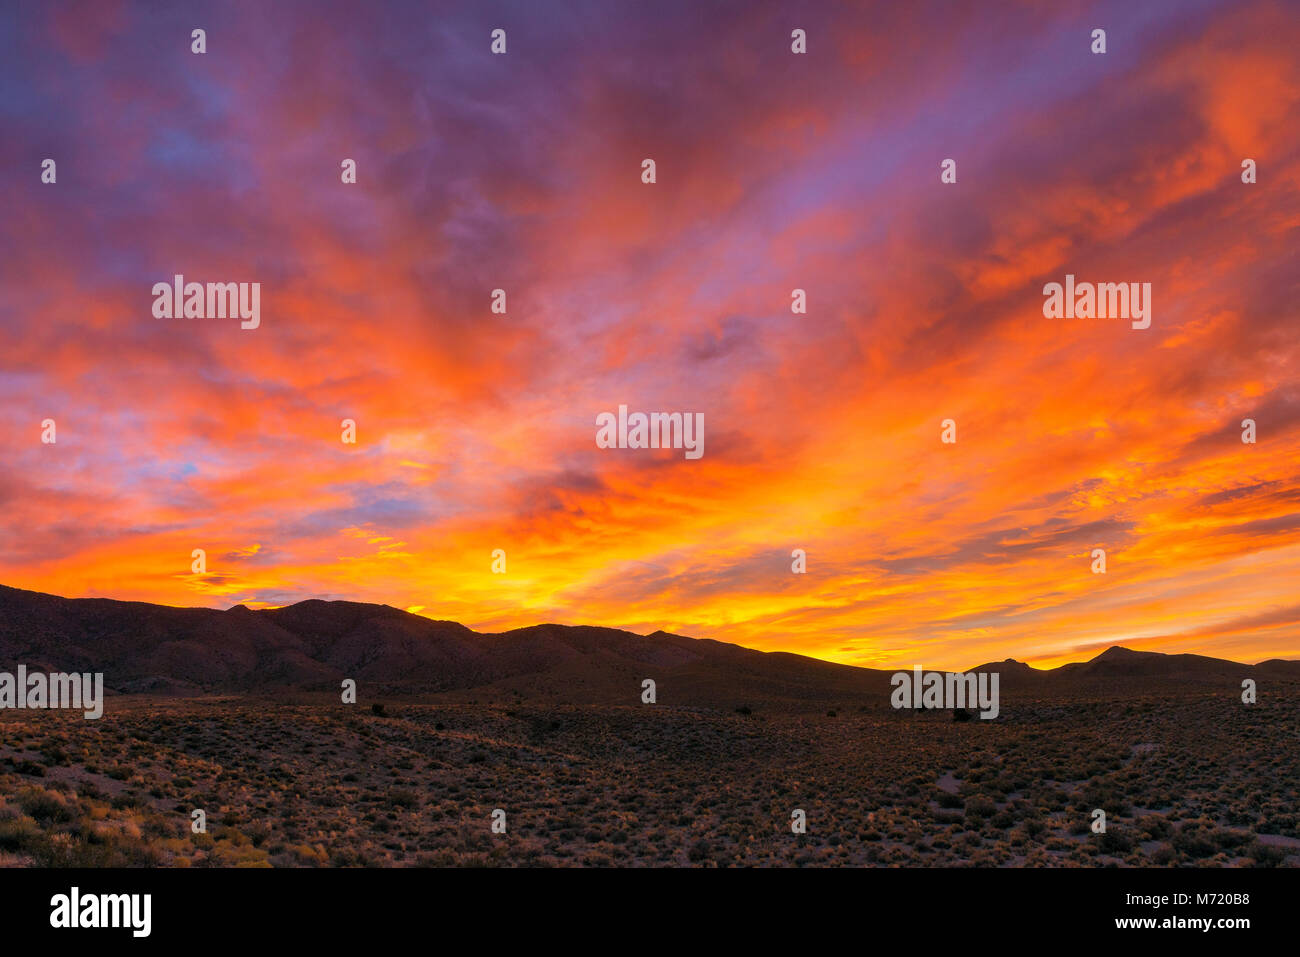 Sunrise, Coyote Gipfel, Timpahute, Nevada Stockbild